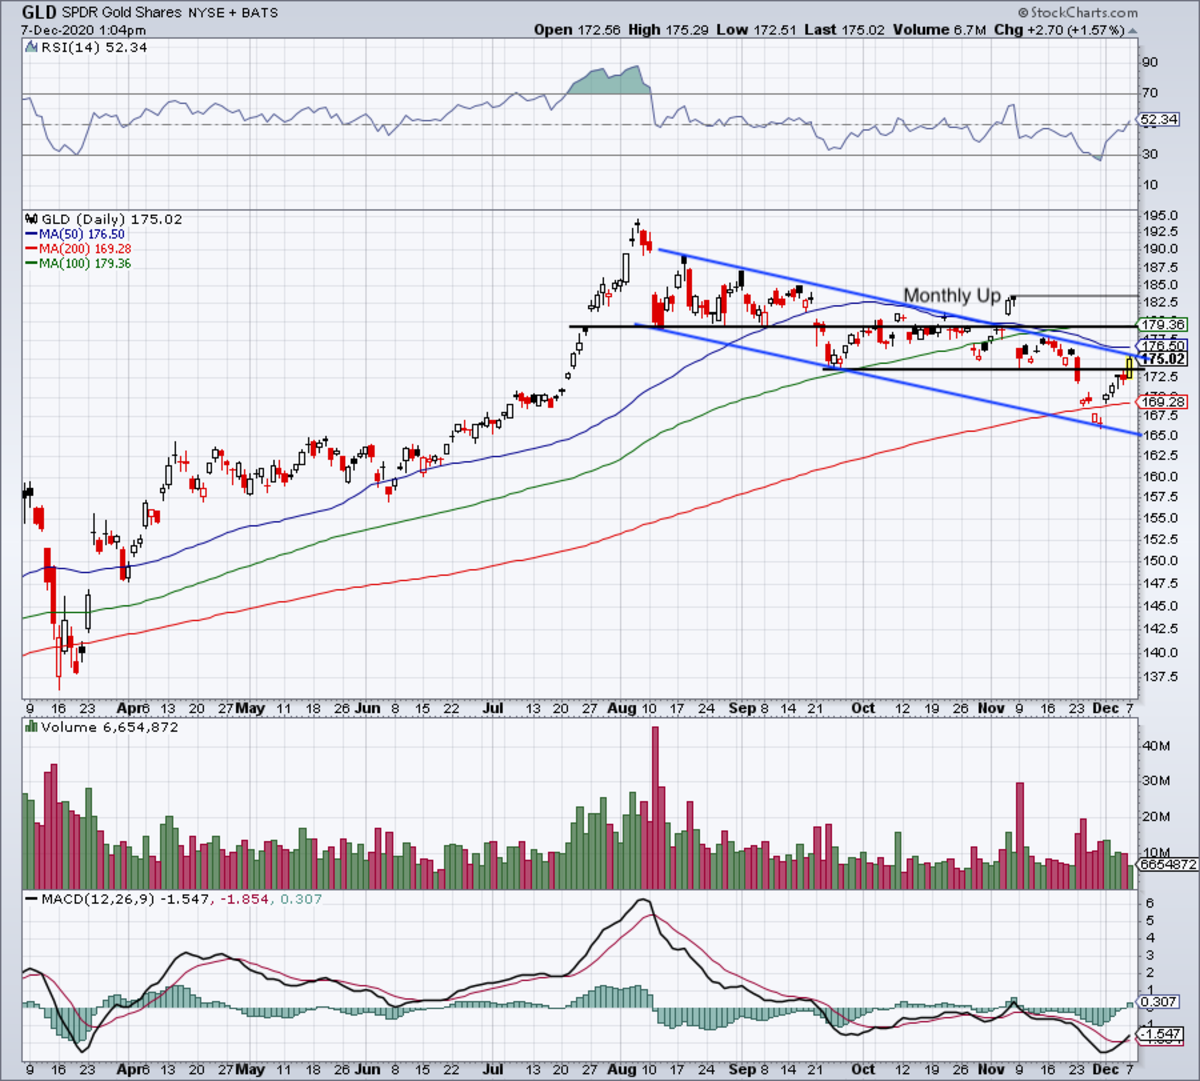 Daily chart of the GLD.